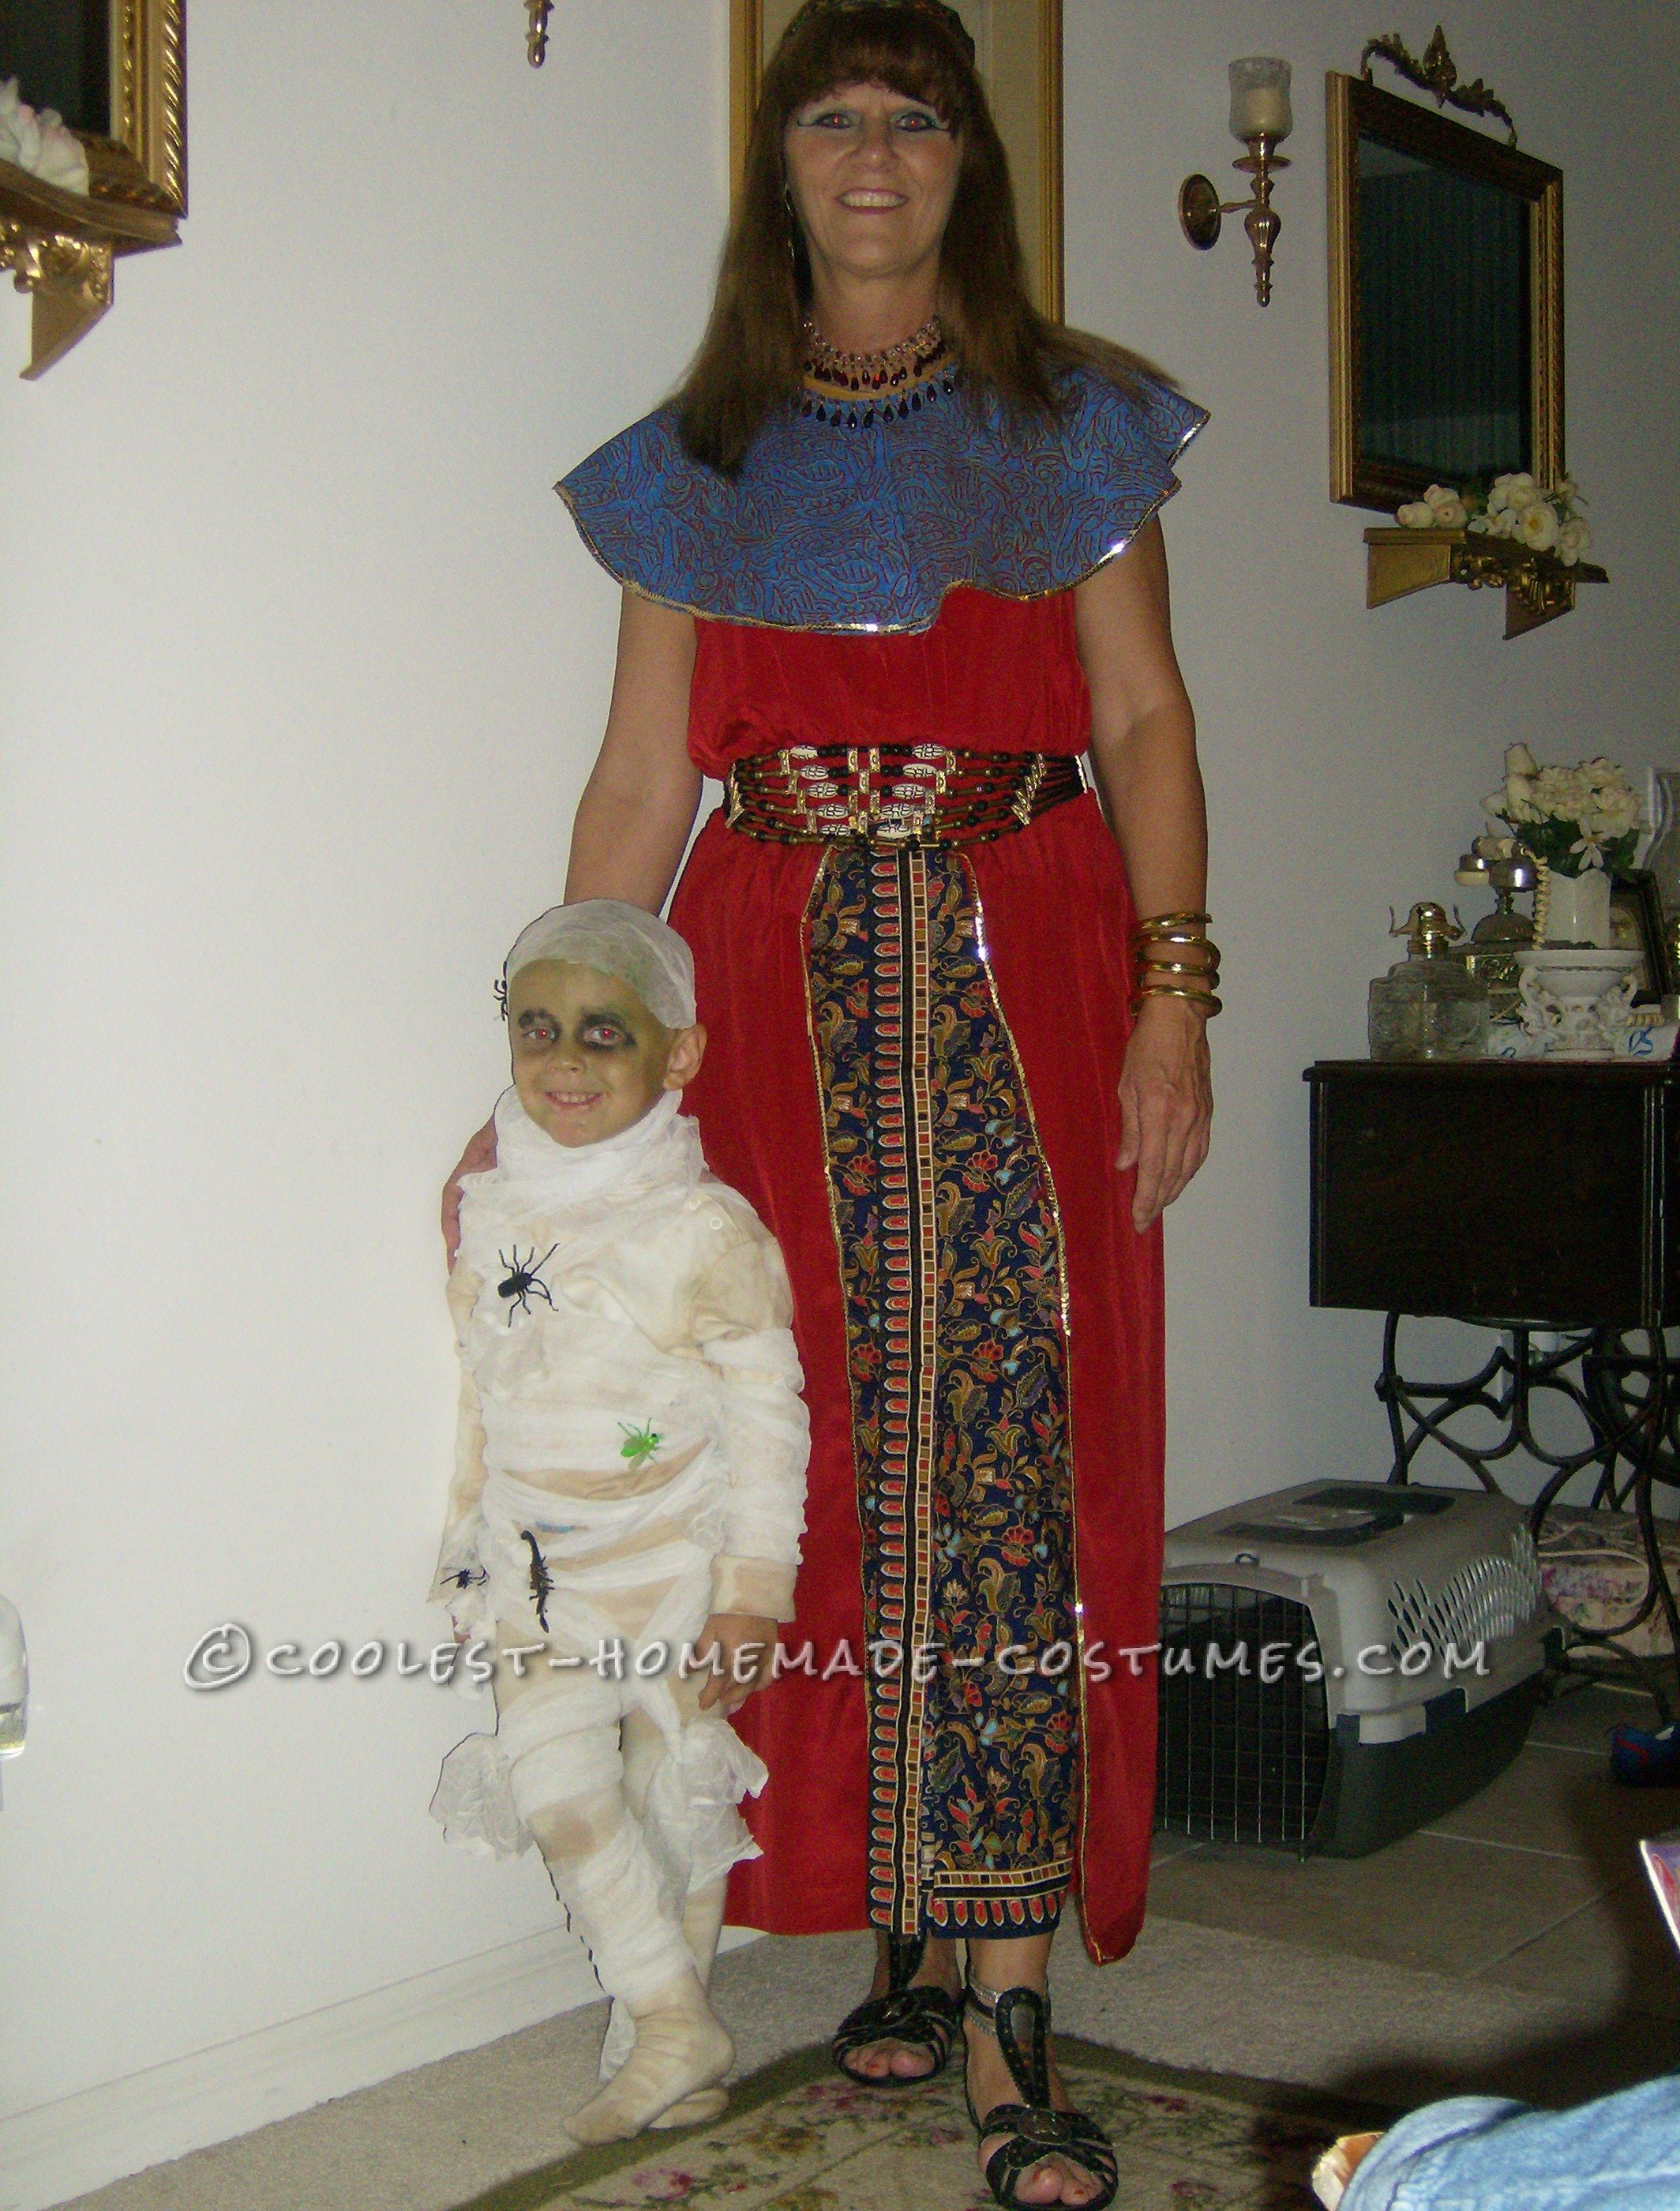 Cool Mom and Child Couple Costume: Mummy and Egyptian: My mother dressed up as an Egyptian with my son's mummy costume for the daycare carnival. His costume was a whiteturtle neck and white tightsund